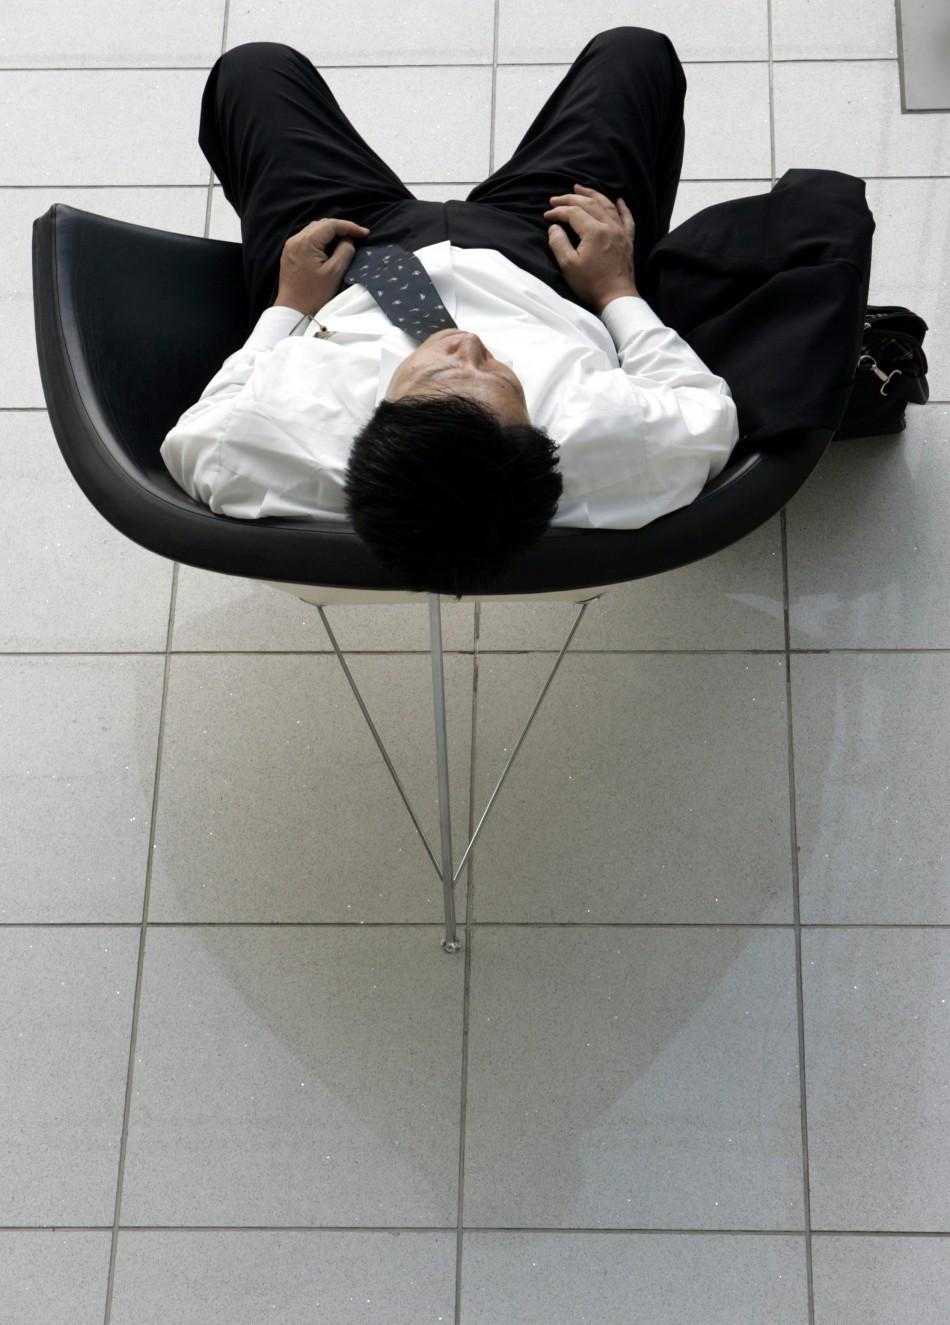 Sitting  11 hours or more per day raises the your risk of dying by 40 percent